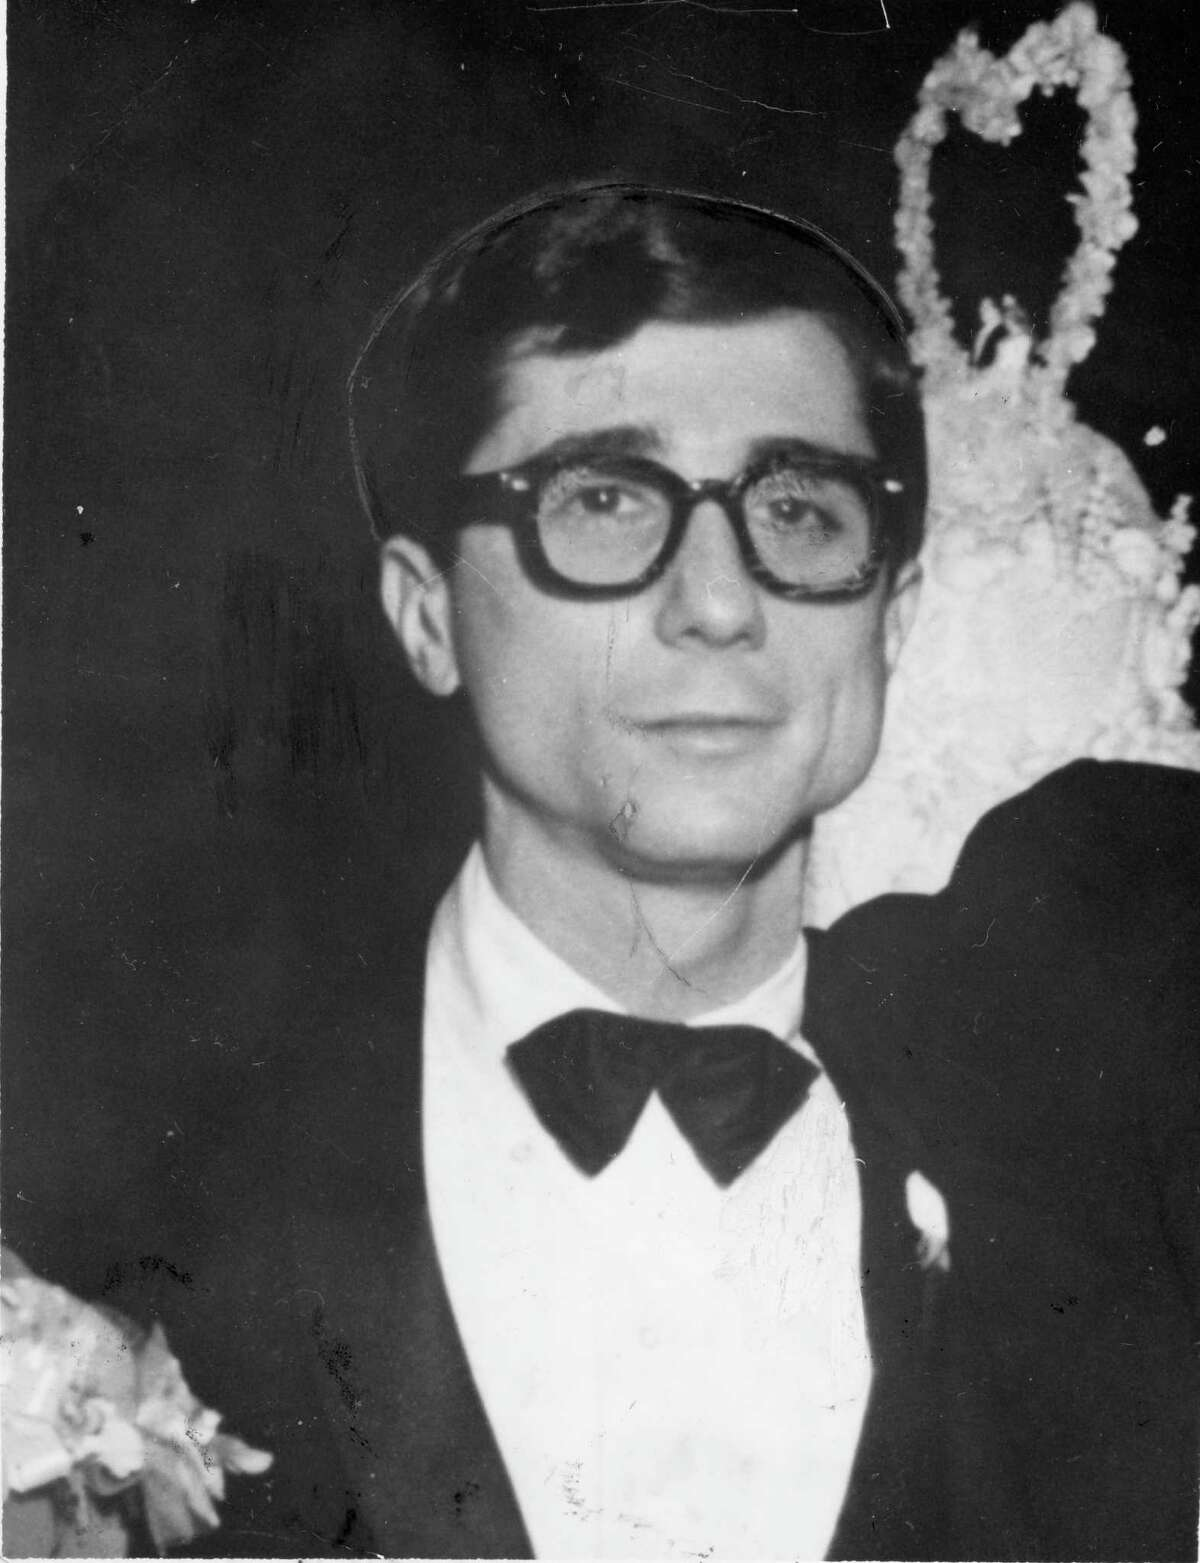 Alan Harry Berg, a carpet executive, went missing May 28, 1968. His skeleton was found on the beach at Surfside on Nov. 8, 1968.